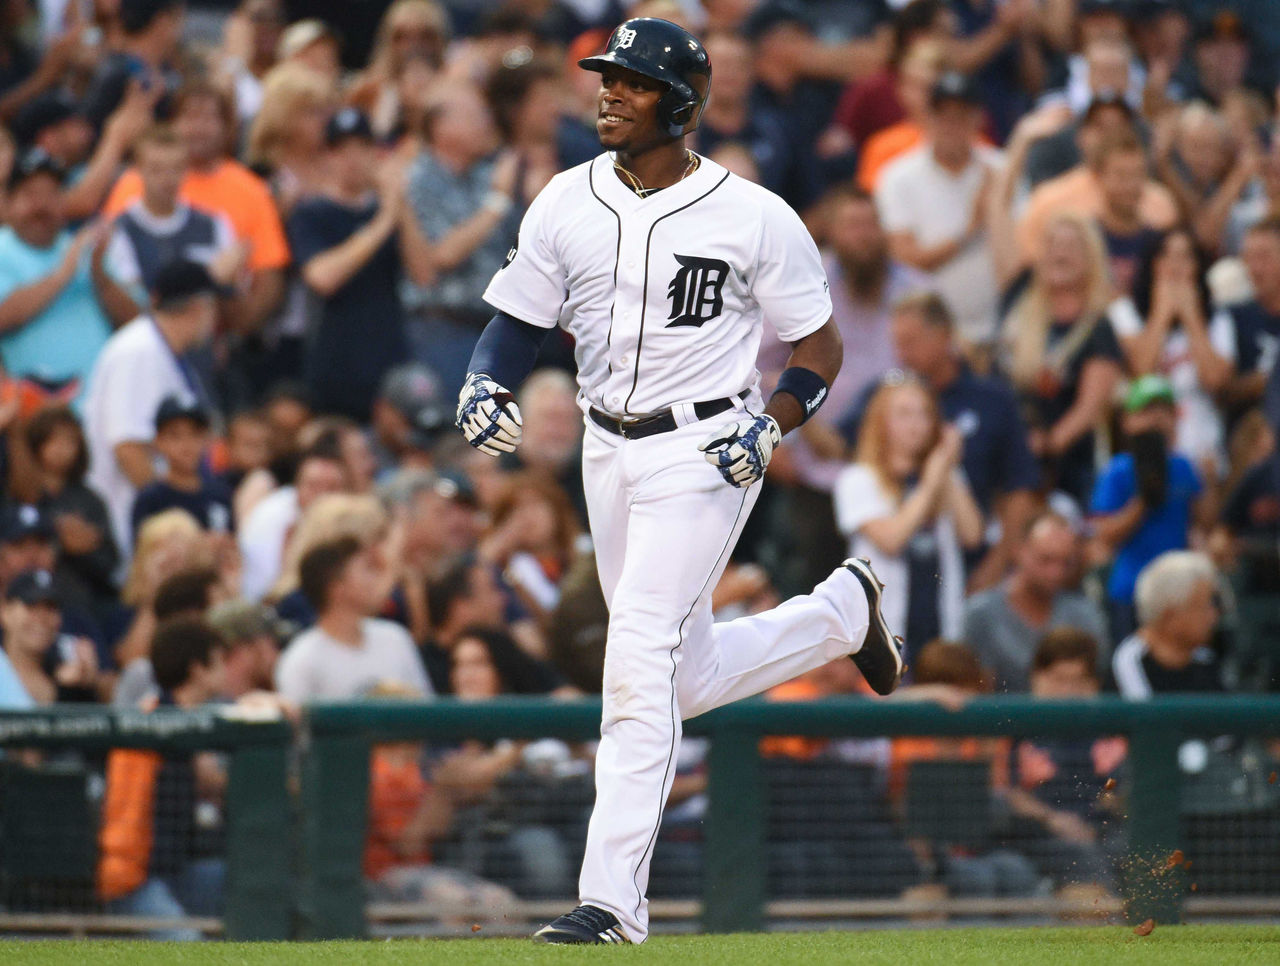 Cropped_2017-08-19t001643z_969285644_nocid_rtrmadp_3_mlb-los-angeles-dodgers-at-detroit-tigers